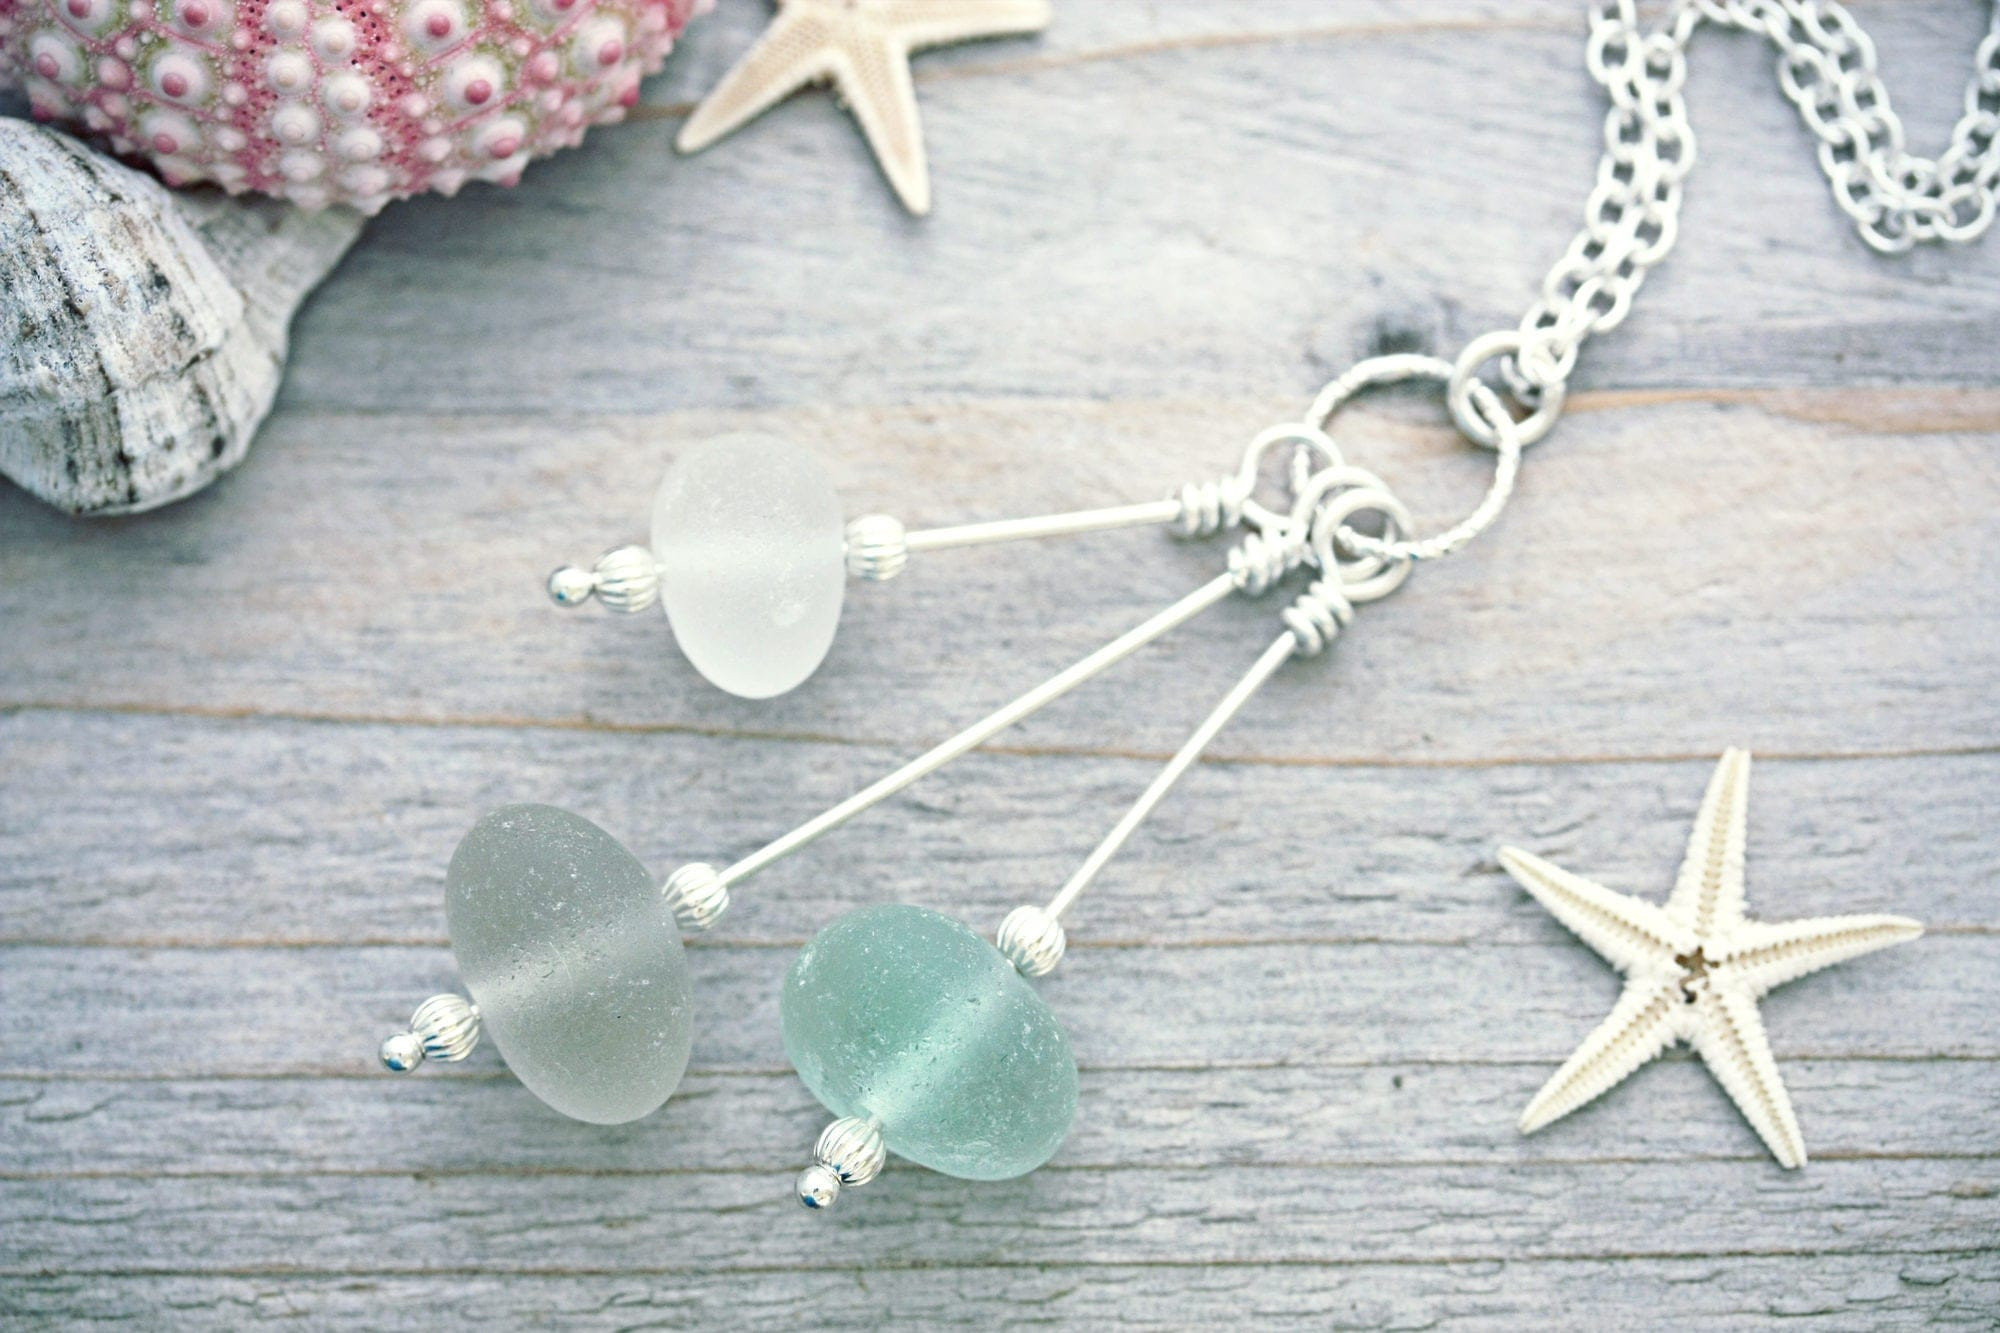 Sea glass necklace seaglass pendant genuine beach glass jewelry sea glass necklace seaglass pendant genuine beach glass jewelry ocean wave aqua trio mermaid cascade seaham found object art free shipping mozeypictures Image collections